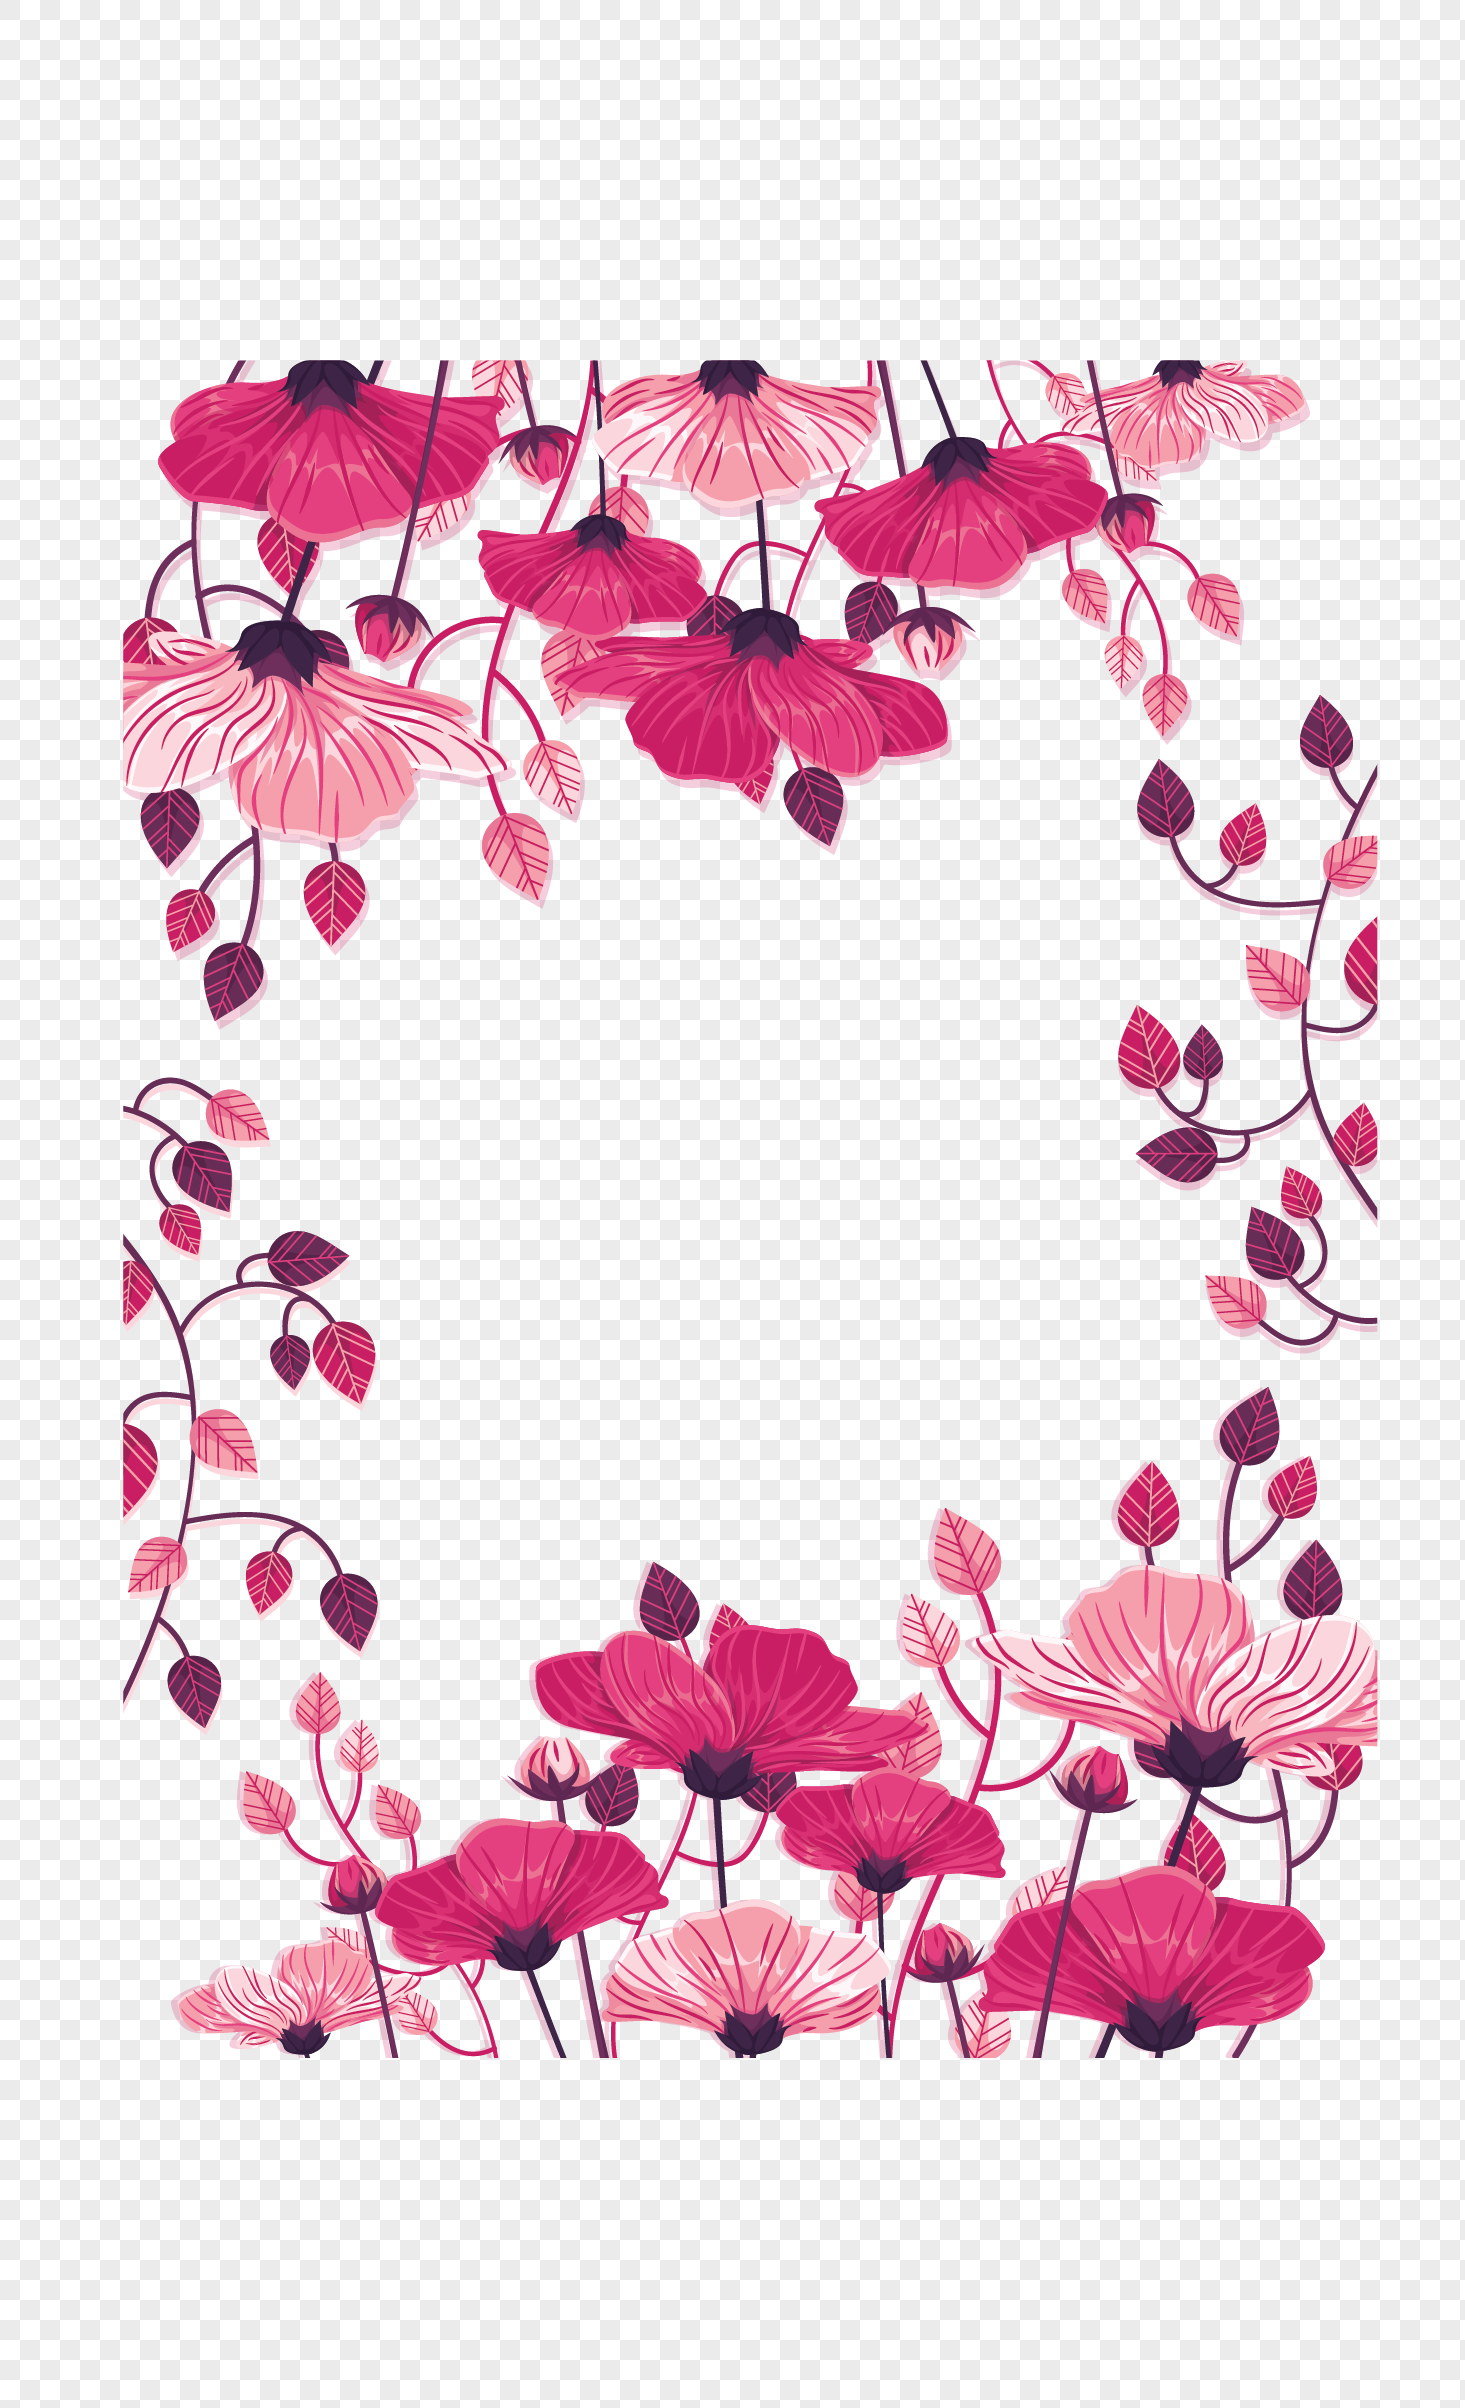 Romantic Pink Flowers Border Png Imagepicture Free Download